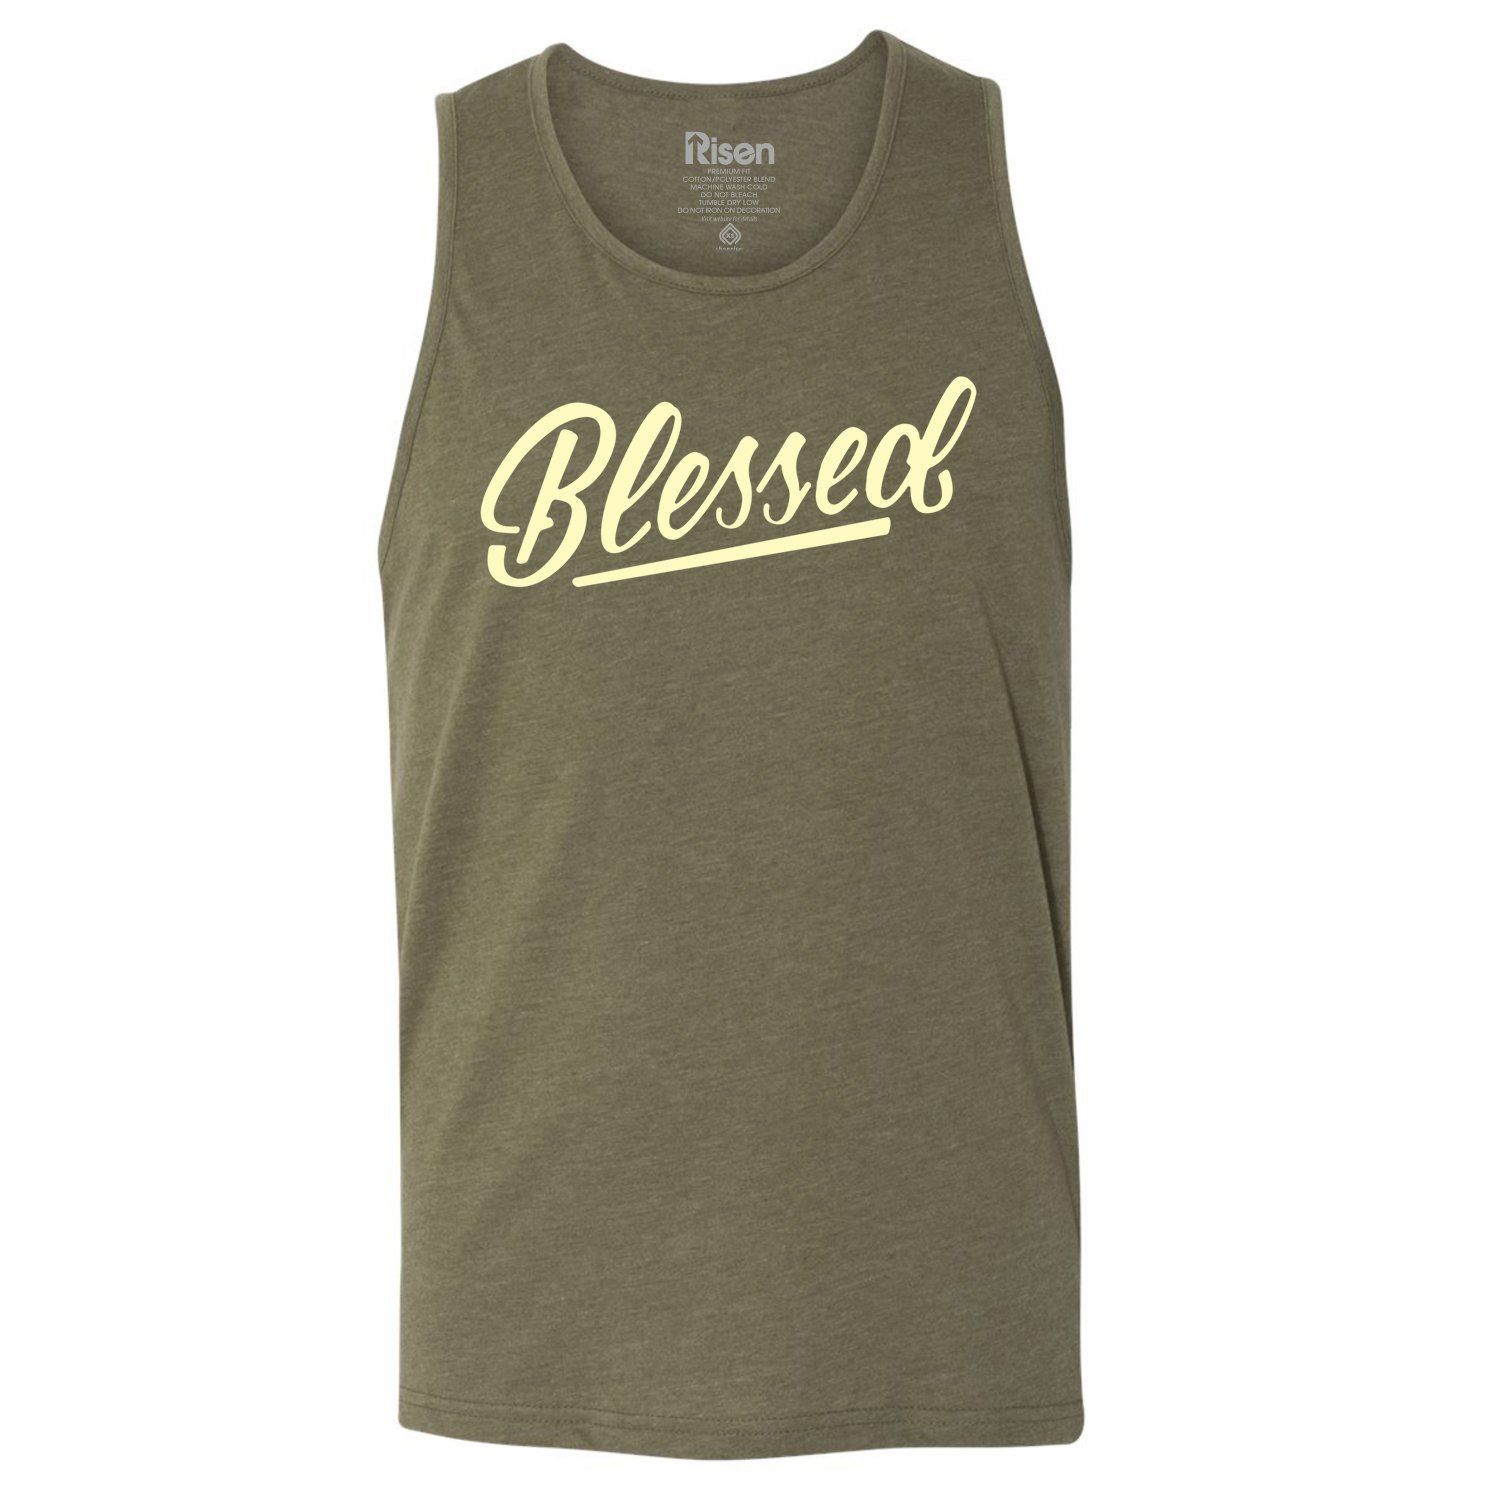 9e3892fc2b7d67 Amazon.com  Risen Apparel Blessed Christian Tank top Army camo by  Clothing